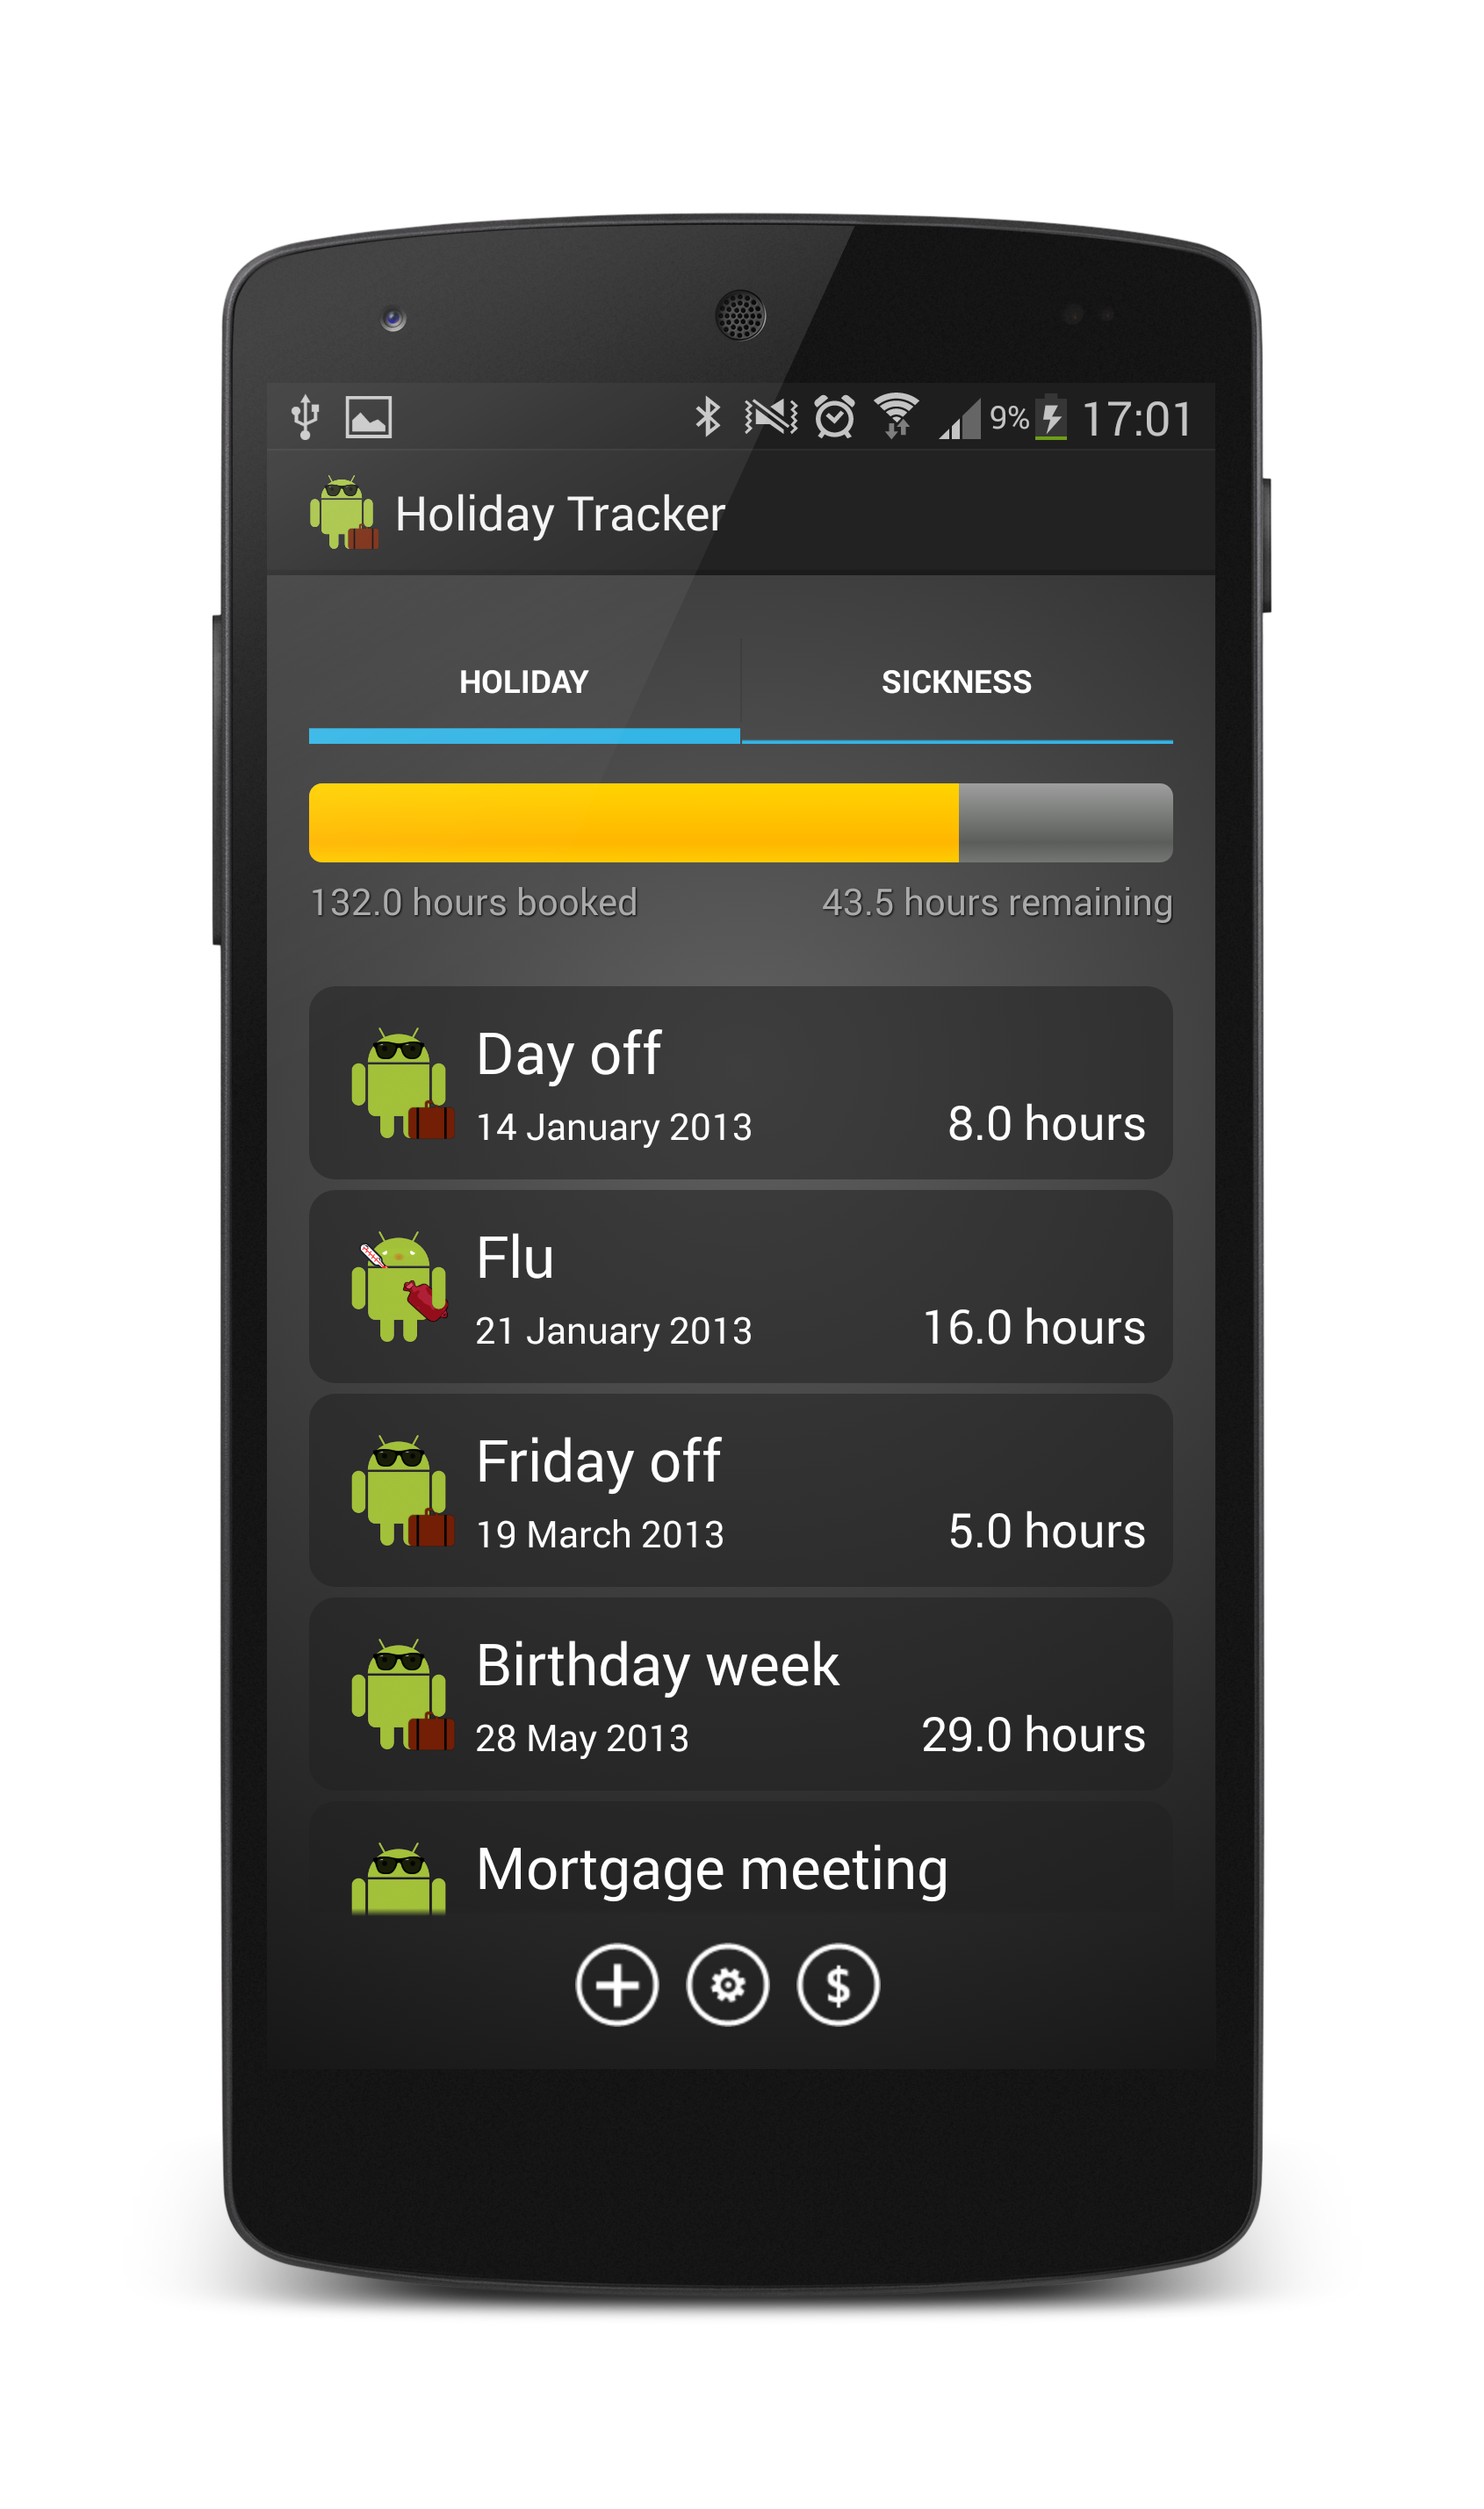 Holiday Tracker for Android